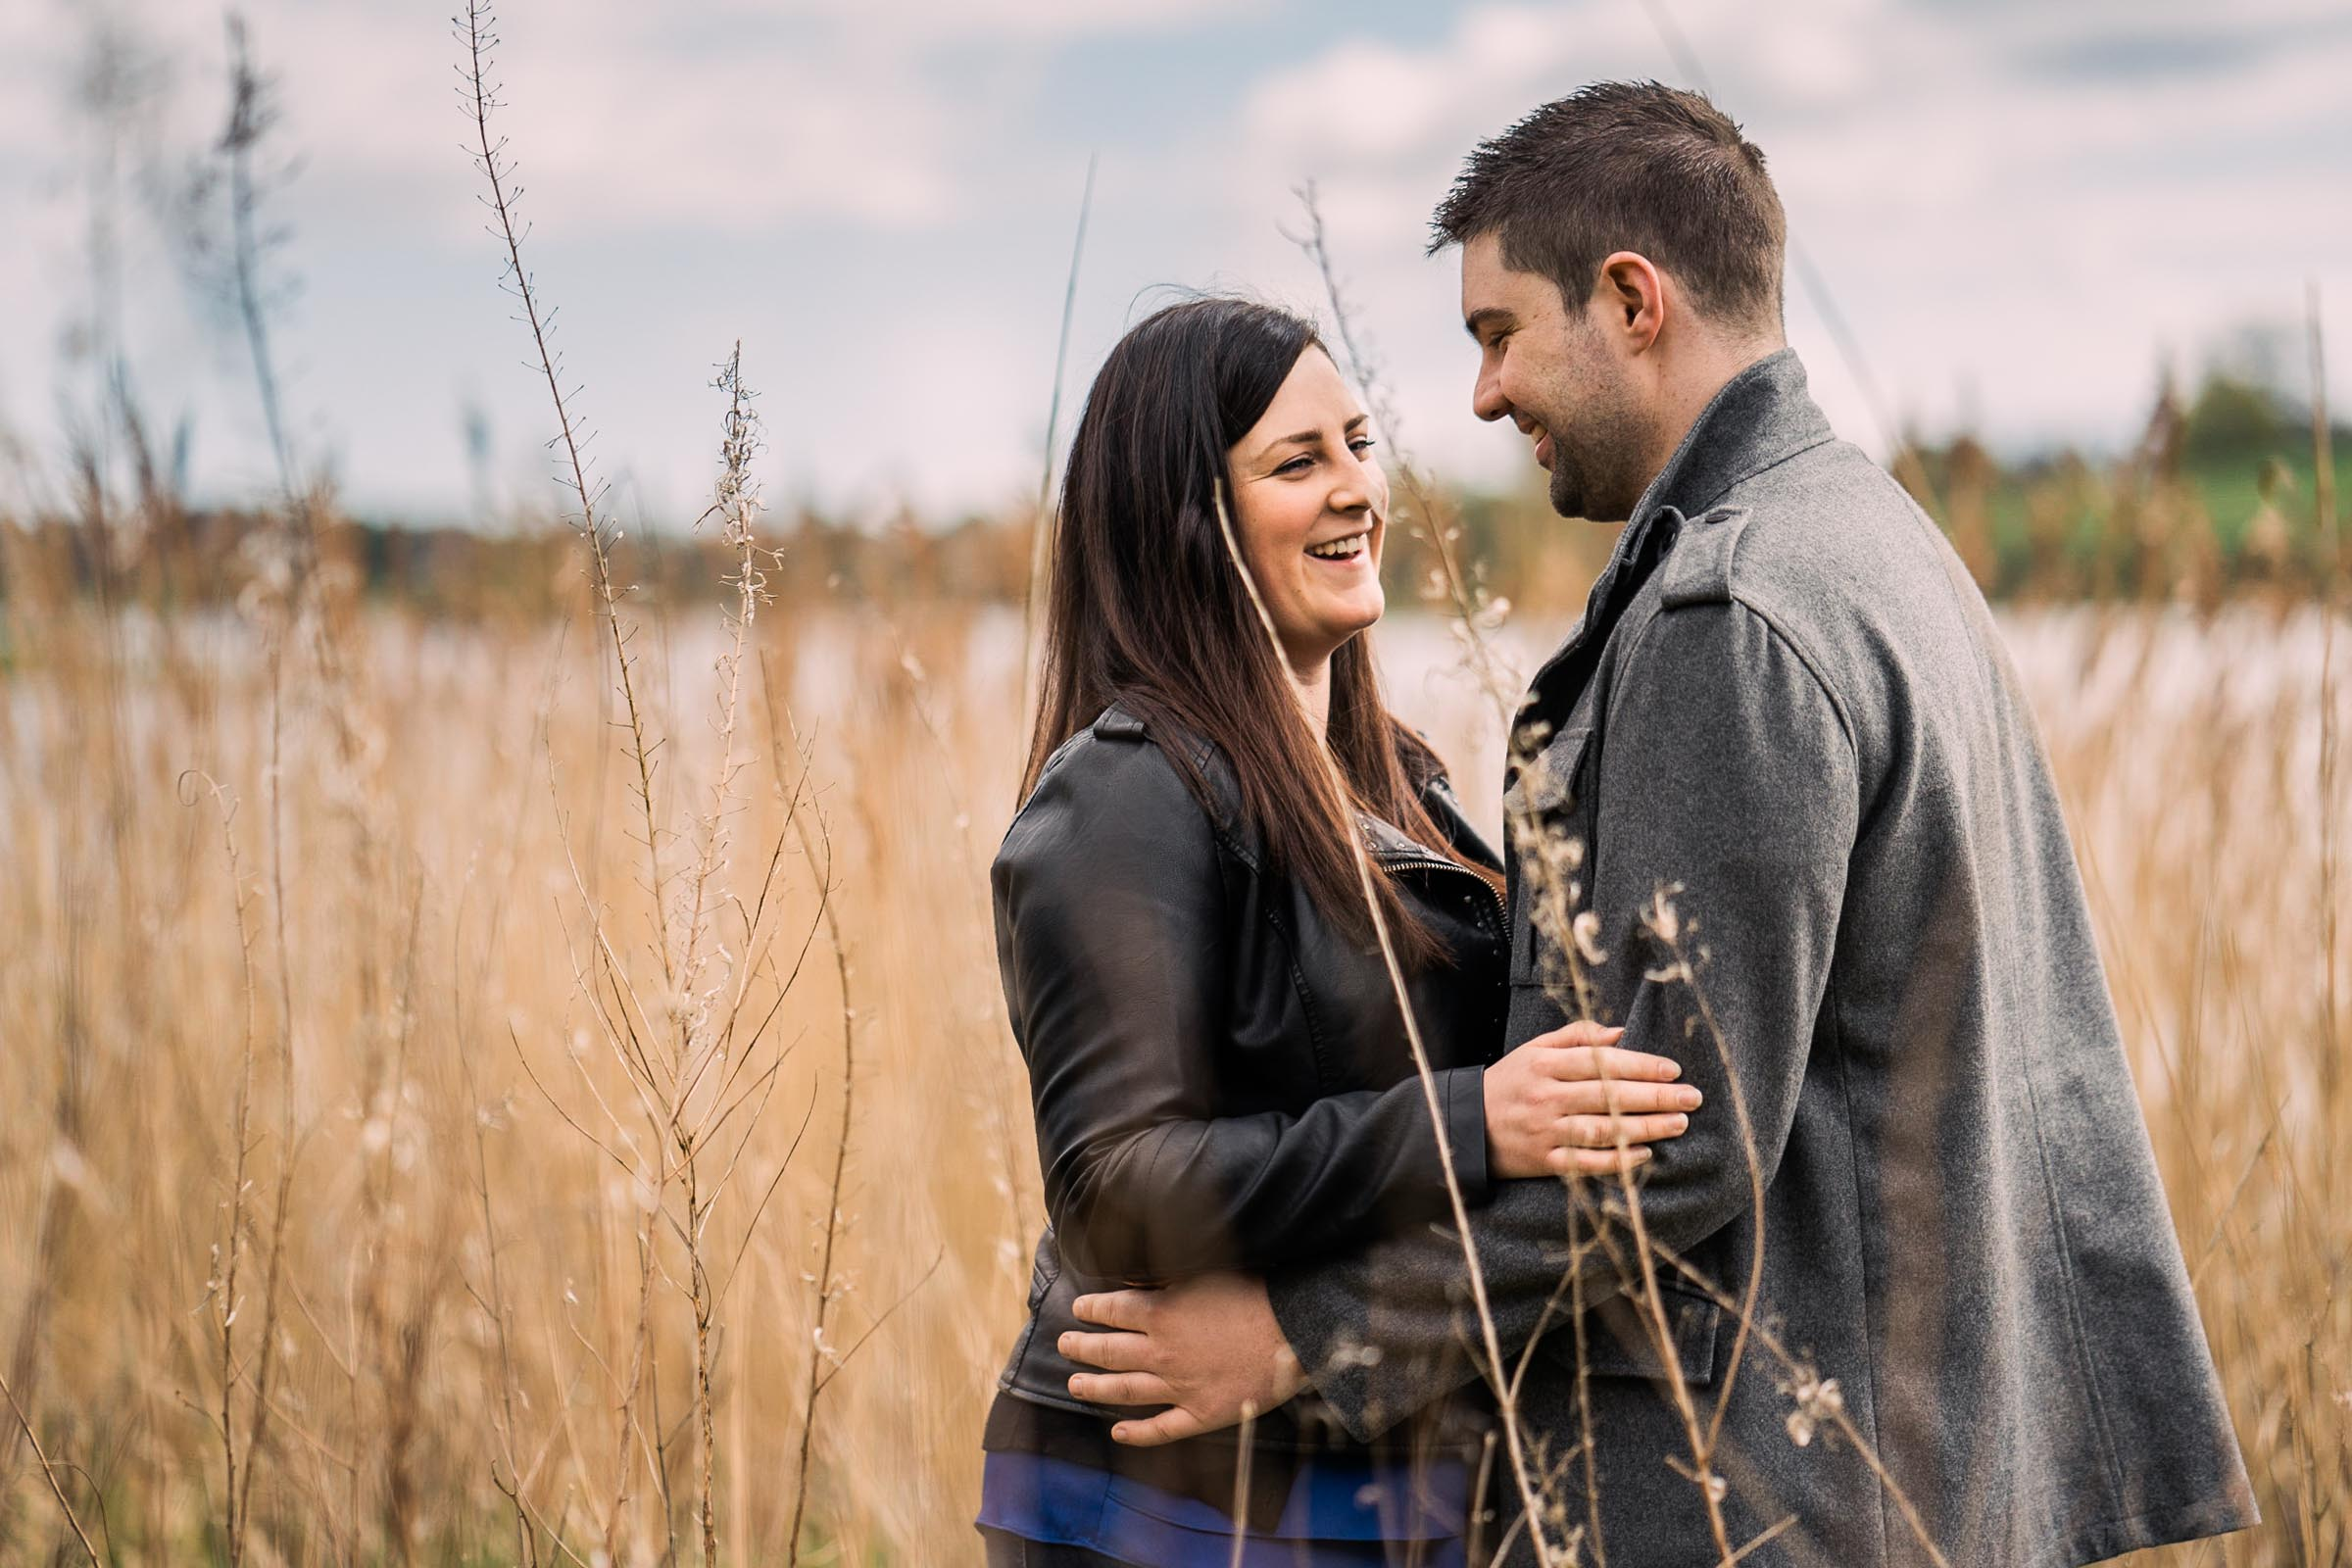 scottish-engagement-photography-elopement-dearlyphotography (38 of 45).jpg